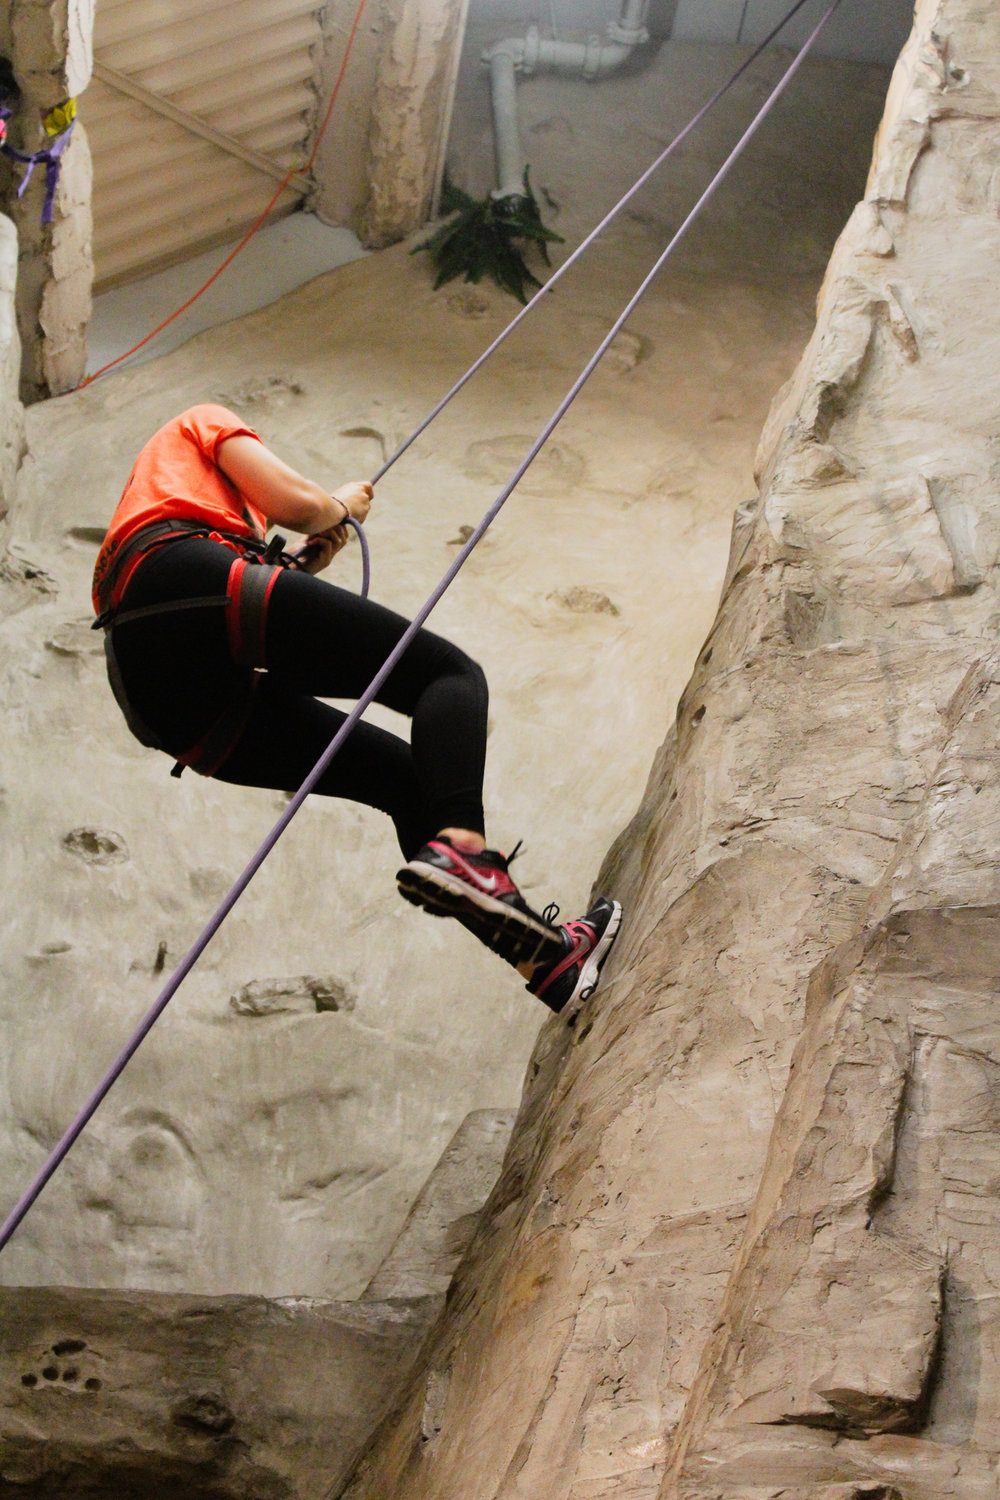 Andie Zuelke is belayed down after climbing to the top of the Inland Wall during Women on the Wall on Sept. 12, 2018. At this event, women would cheer and clap for the climbers who overcame tough obstacles while climbing. Photo by Morgan Pint